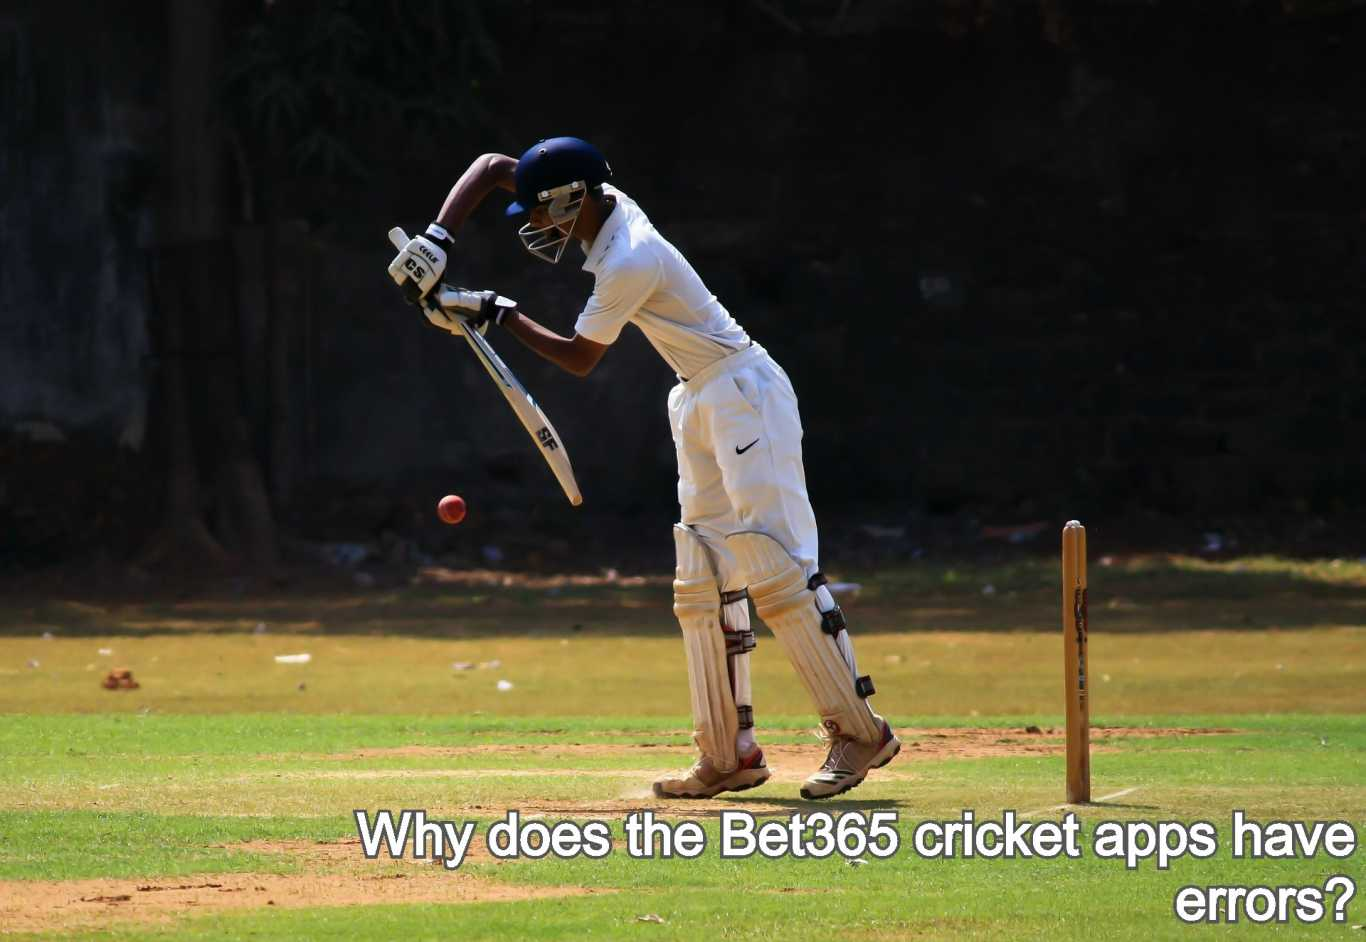 Why does the Bet365 cricket apps have errors?